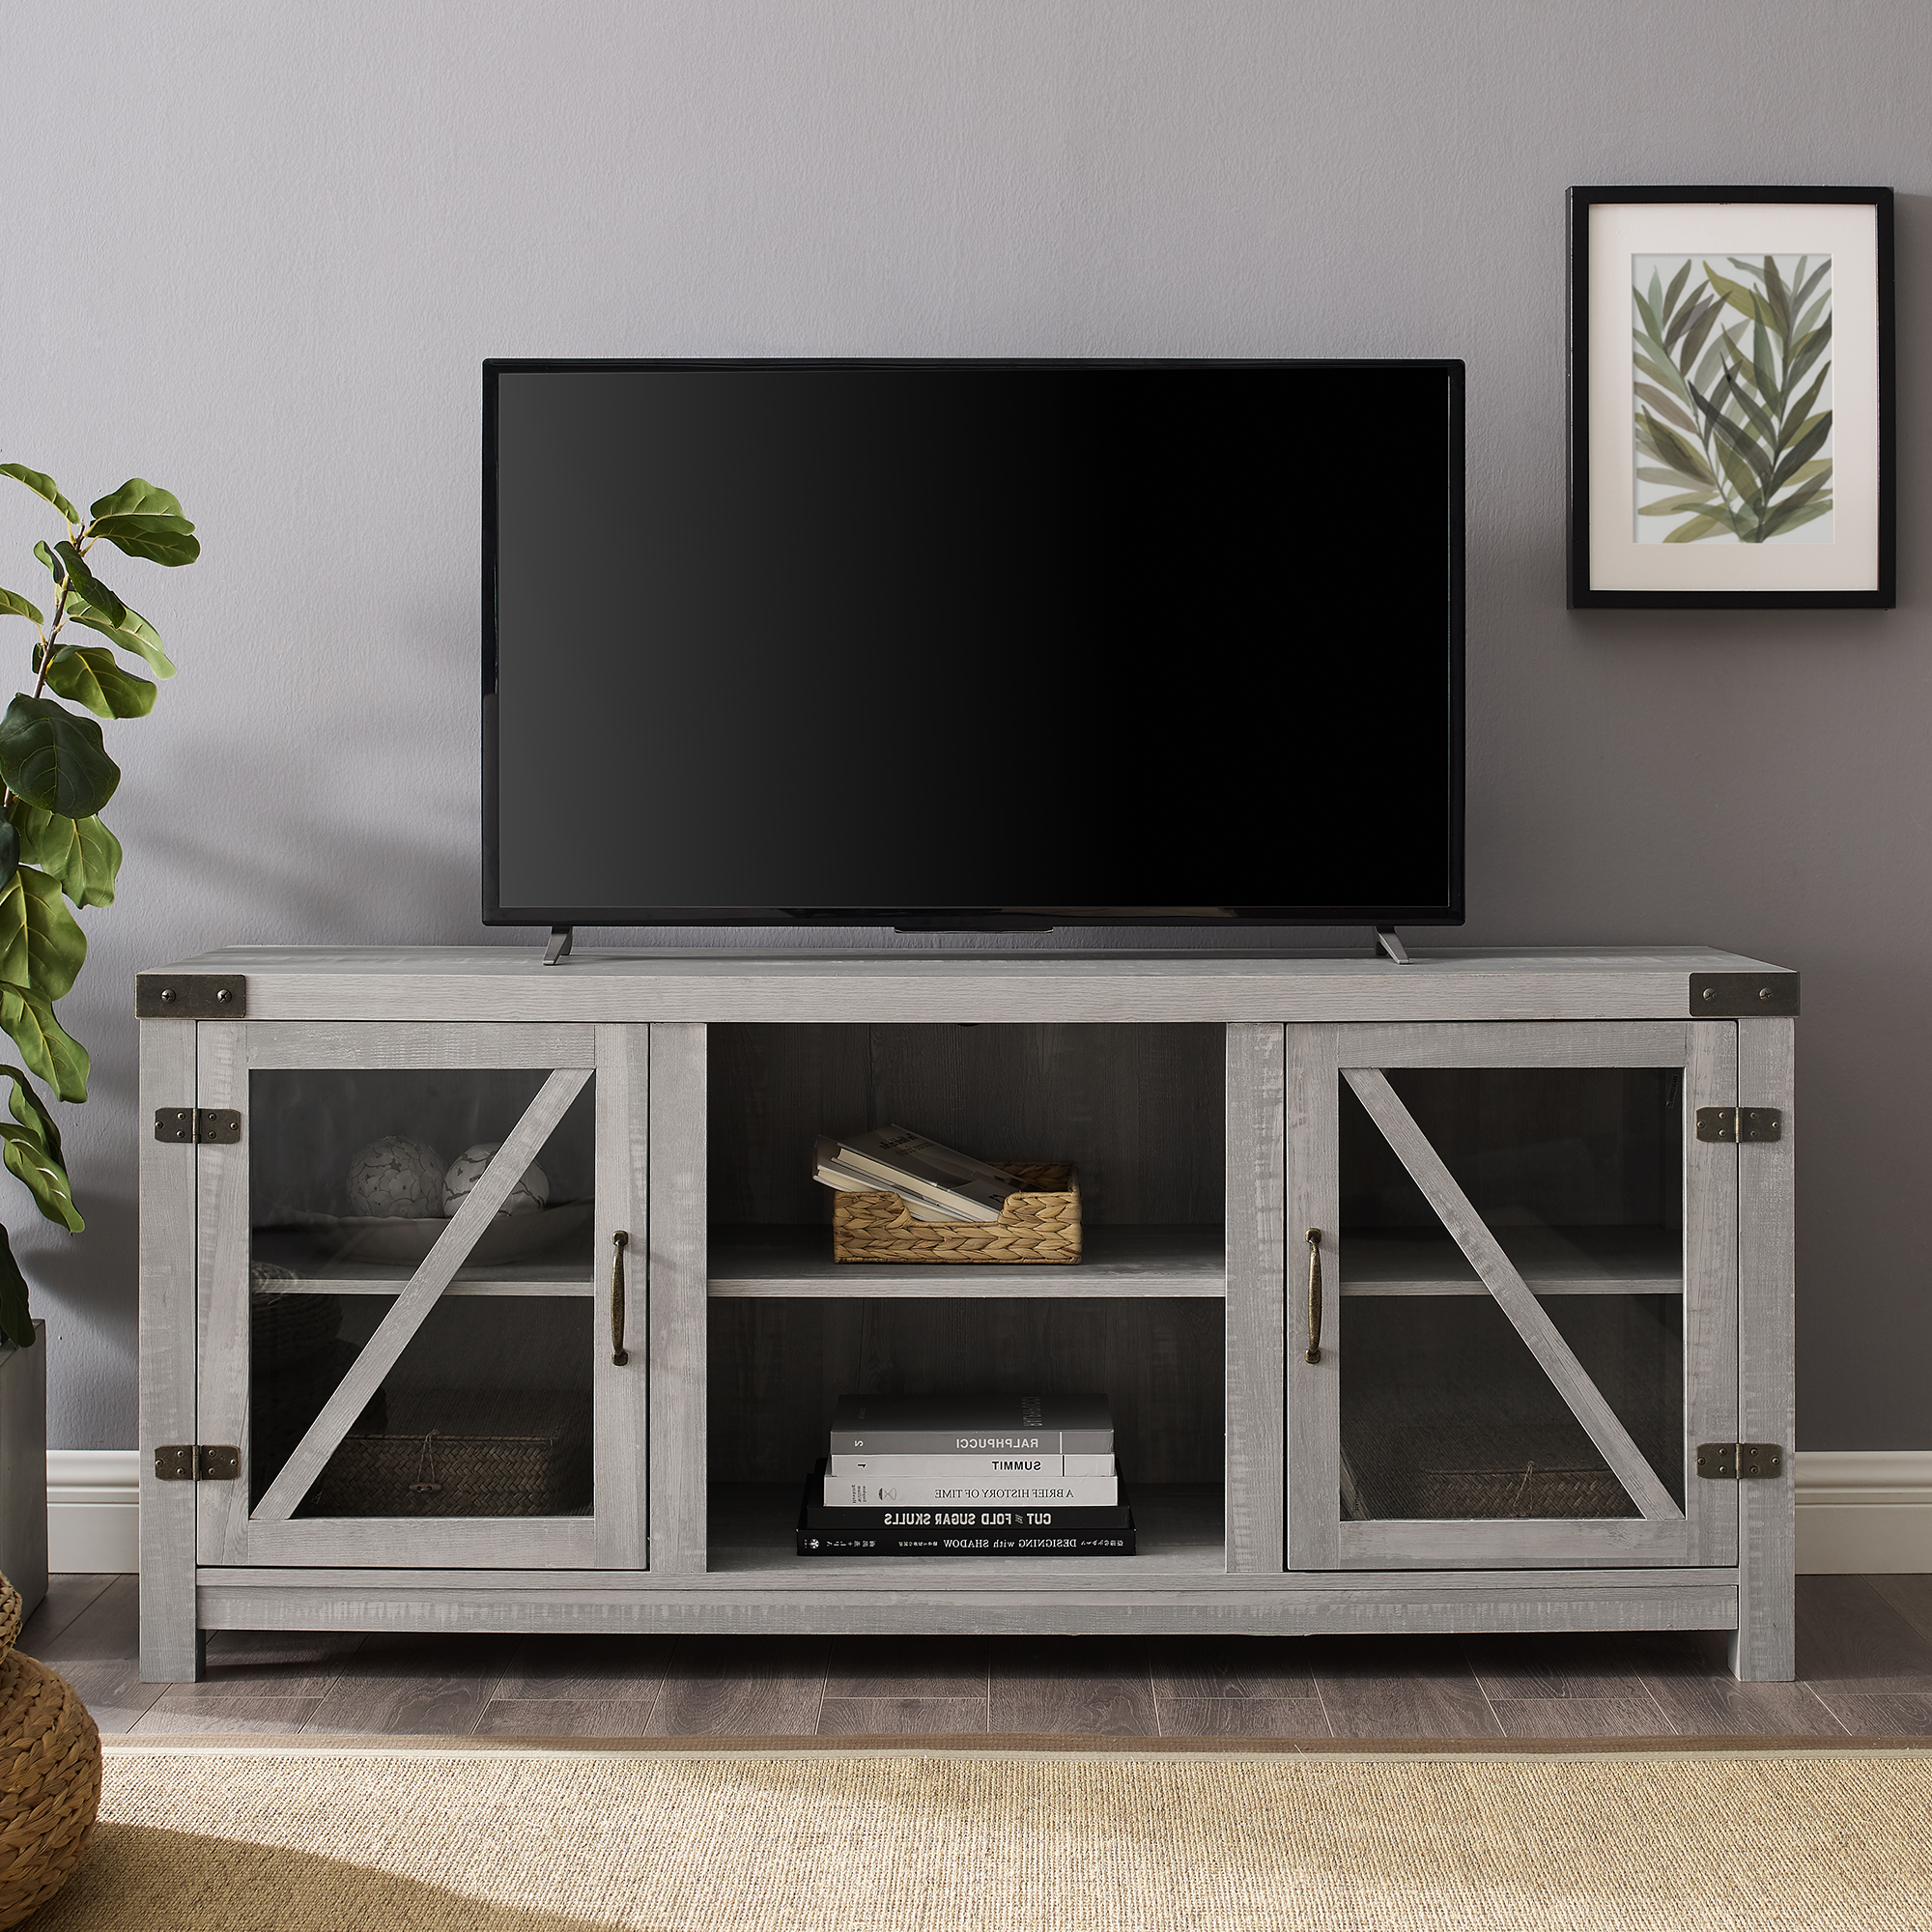 """Famous Manor Park Modern Farmhouse Tv Stand For Tvs Up To 65 Regarding Tv Stands For Tvs Up To 65"""" (View 11 of 22)"""